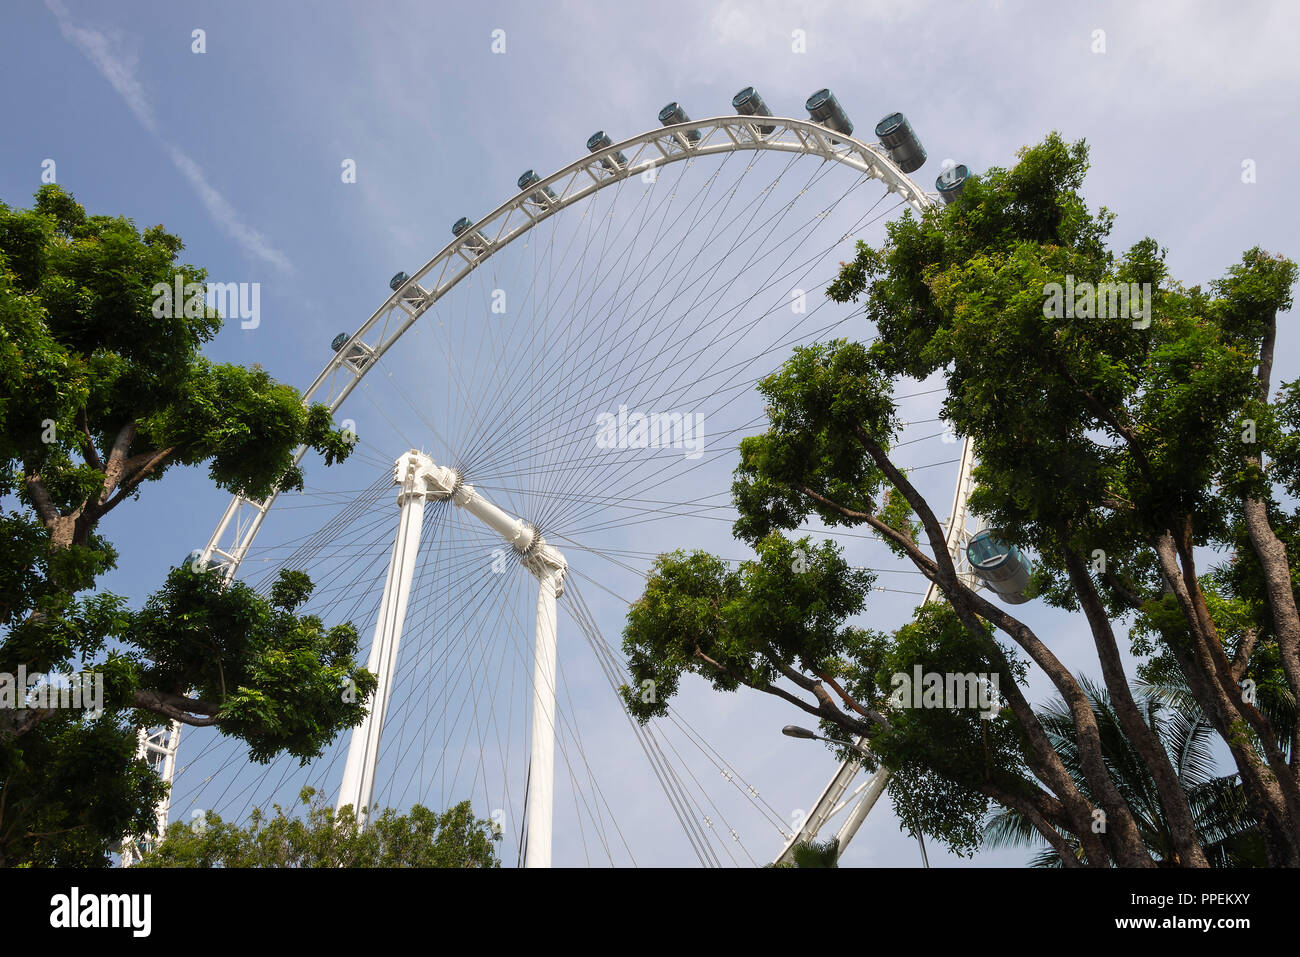 The Singapore Flyer Giant Big Wheel Tourist Attraction by Marina Bay in Downtown Singapore Republic of Singapore Asia - Stock Image